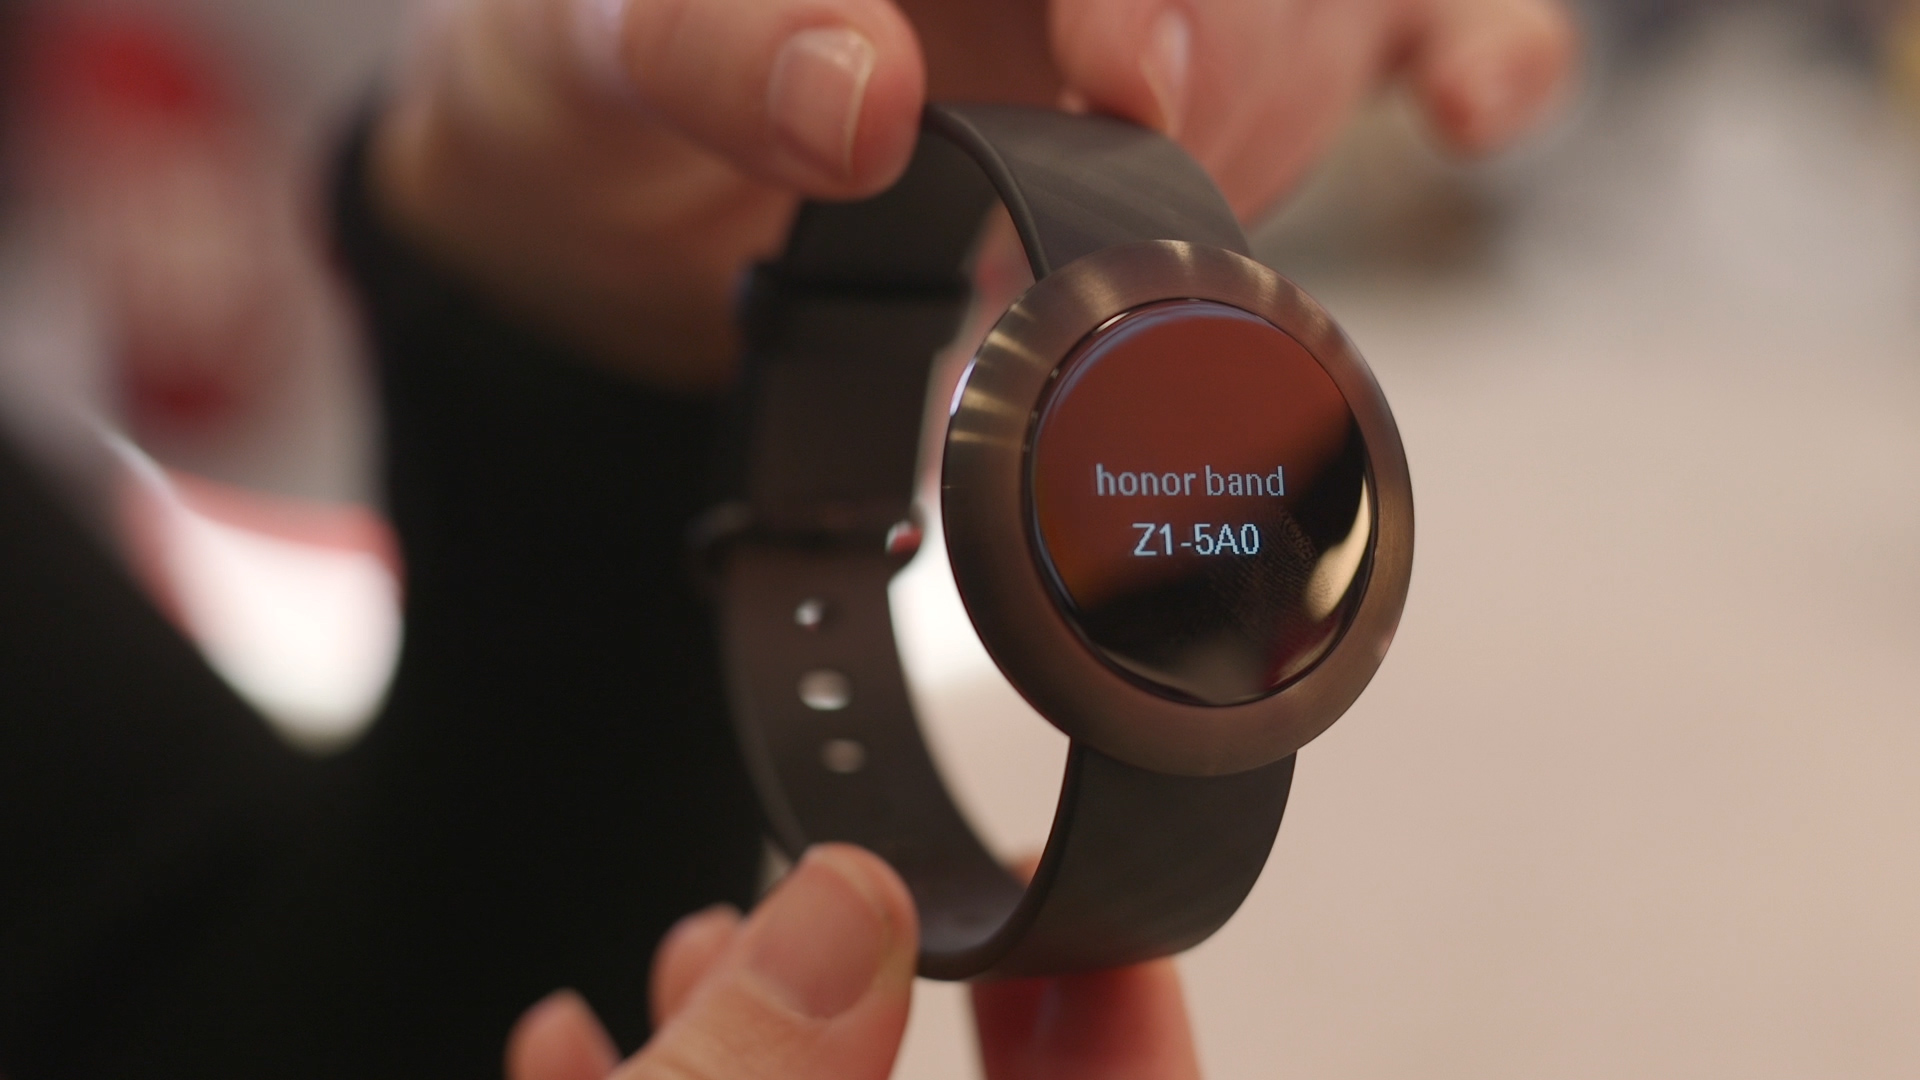 Video: Huawei Honor Band Z1 an $80 smartwatch that skips Android Wear